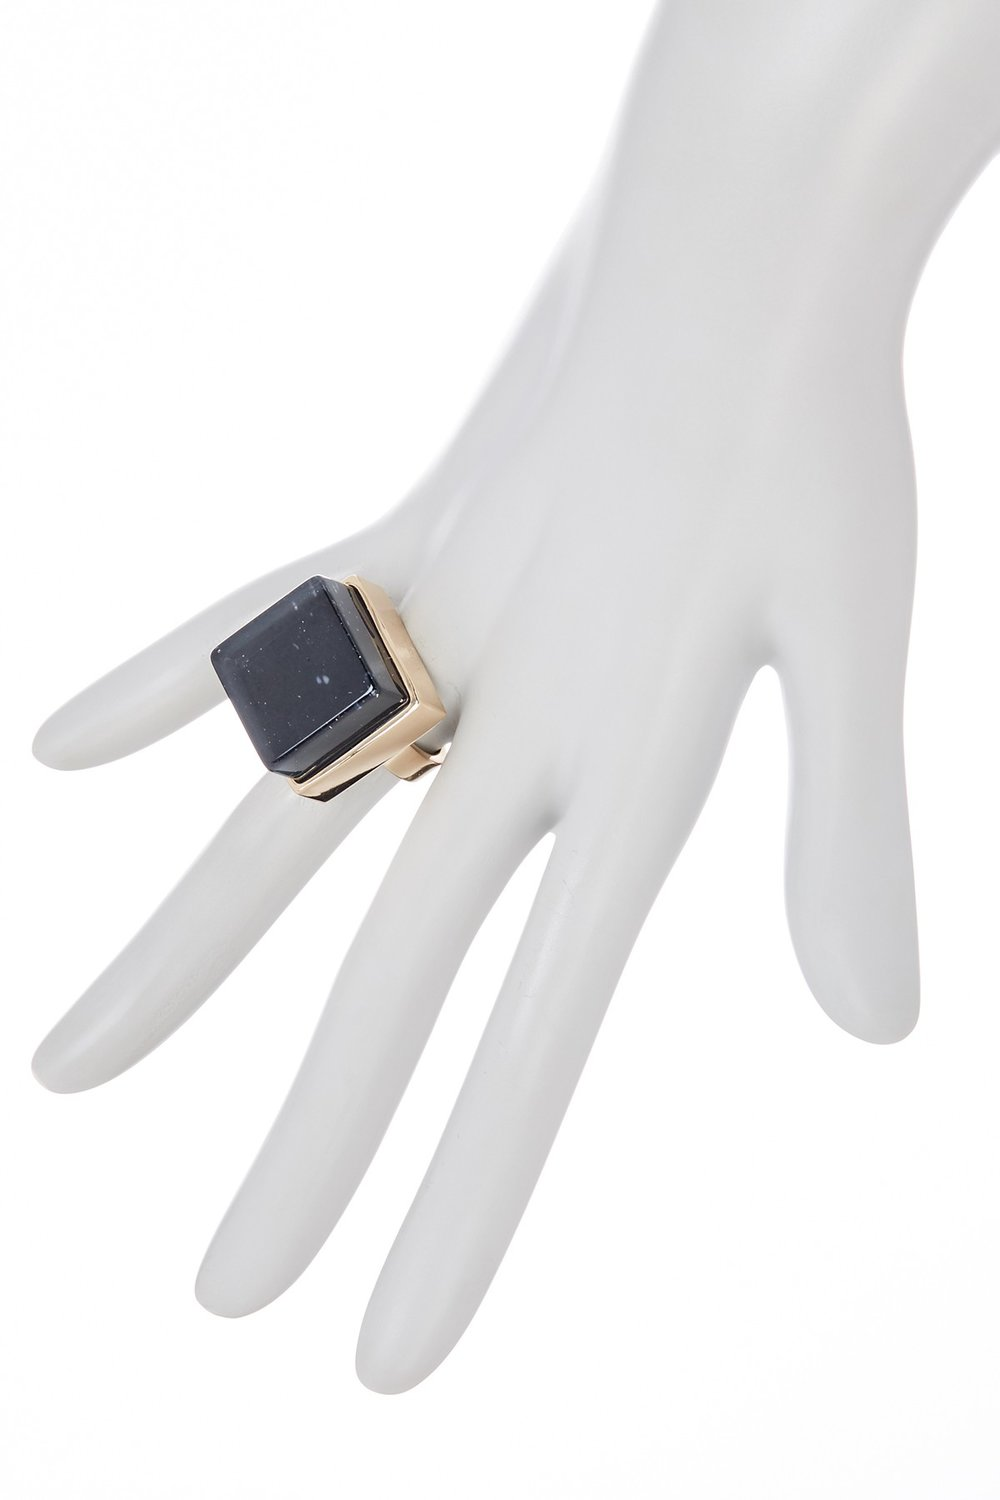 METAL AND STONE Square Black Crystal Ring. Listed separately in different sizes. Nordstrom Rack. $16.